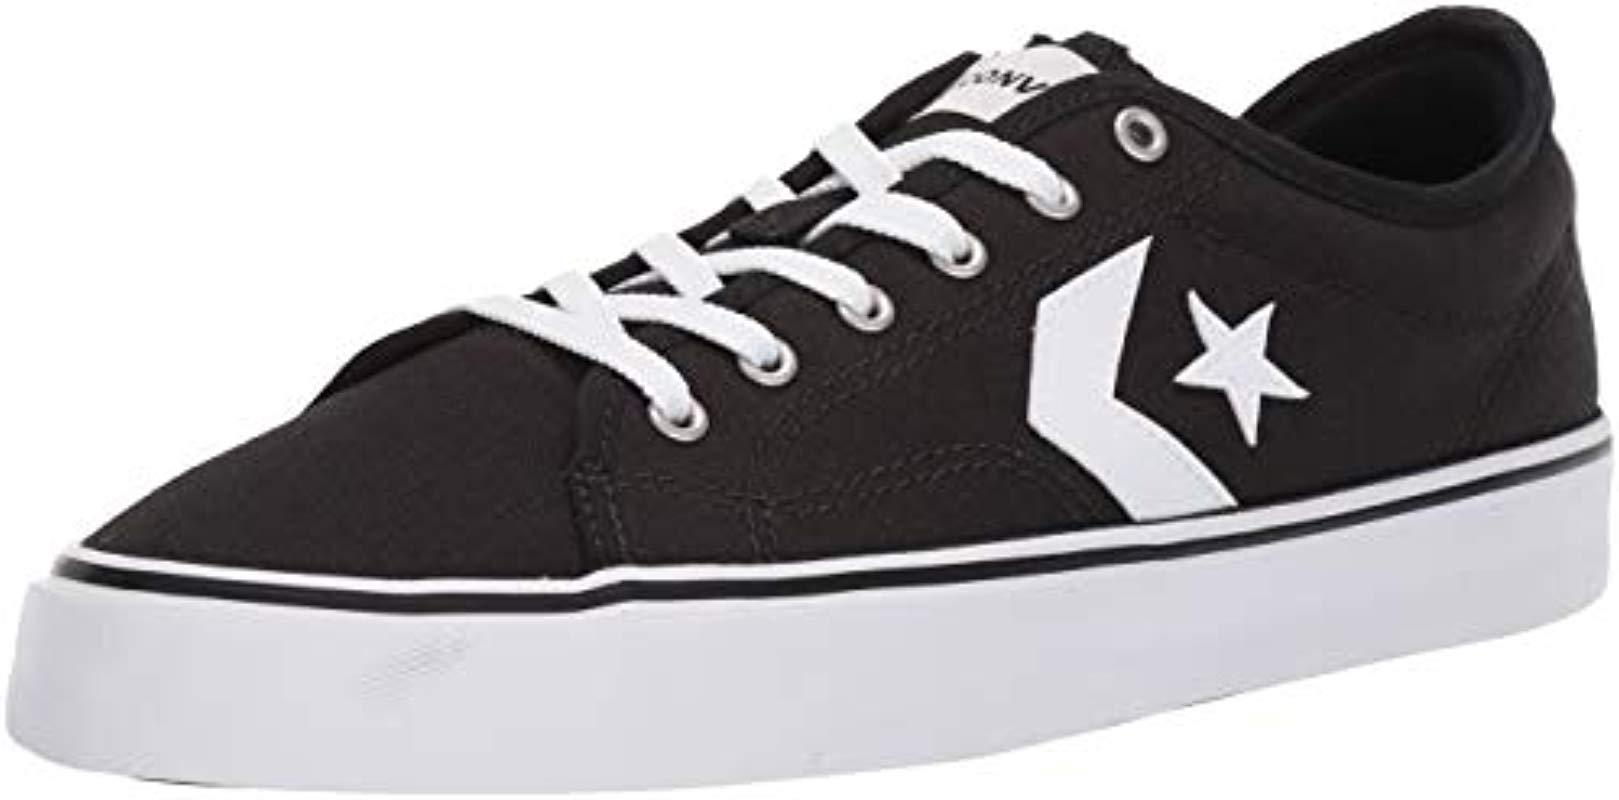 White Unisex Star Replay Low Top Sneaker